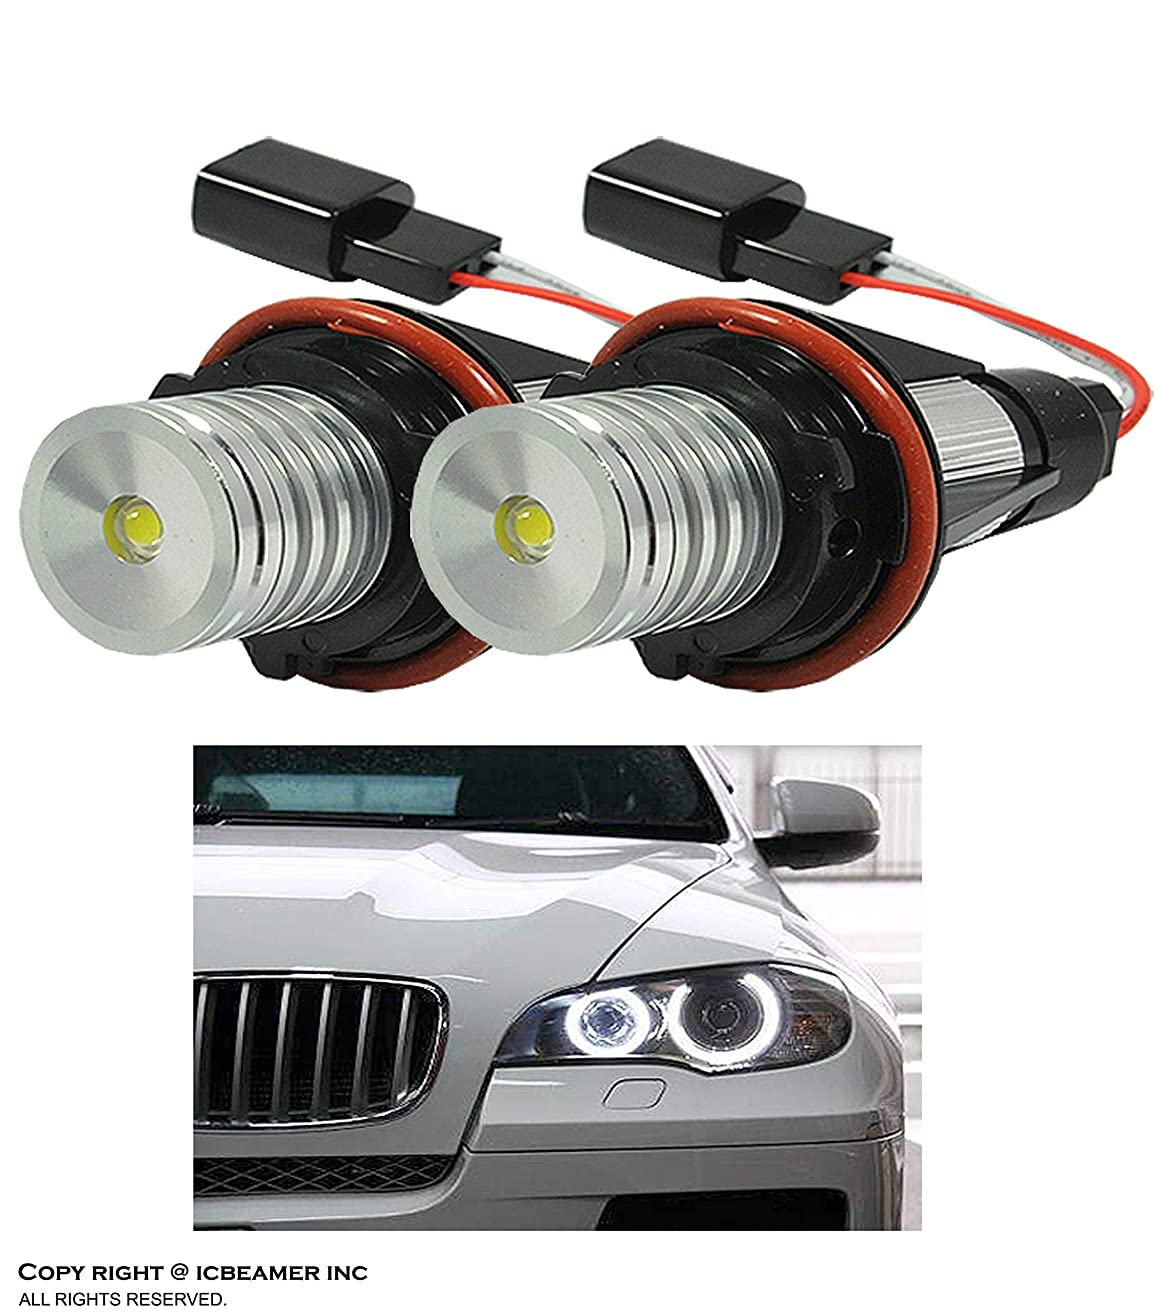 ICBEAMER LED Angel Eye Halo Ring Fit BMW E39 E53 E60 E61 E63 E64 E65 E66 E87 Can Replace OEM Factory Light Bulbs [White]